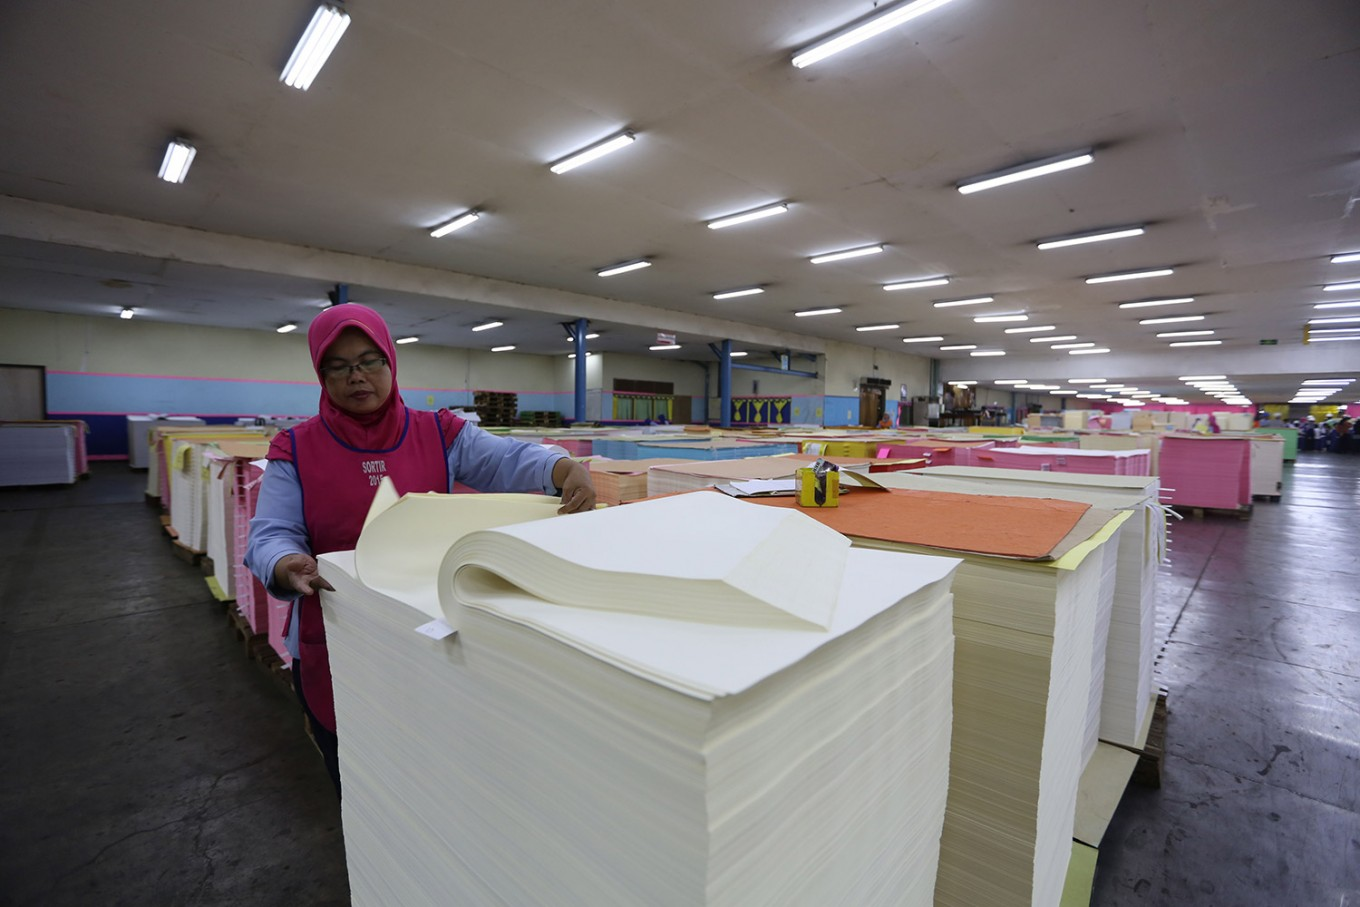 Indonesia reports Australia to WTO over paper duties